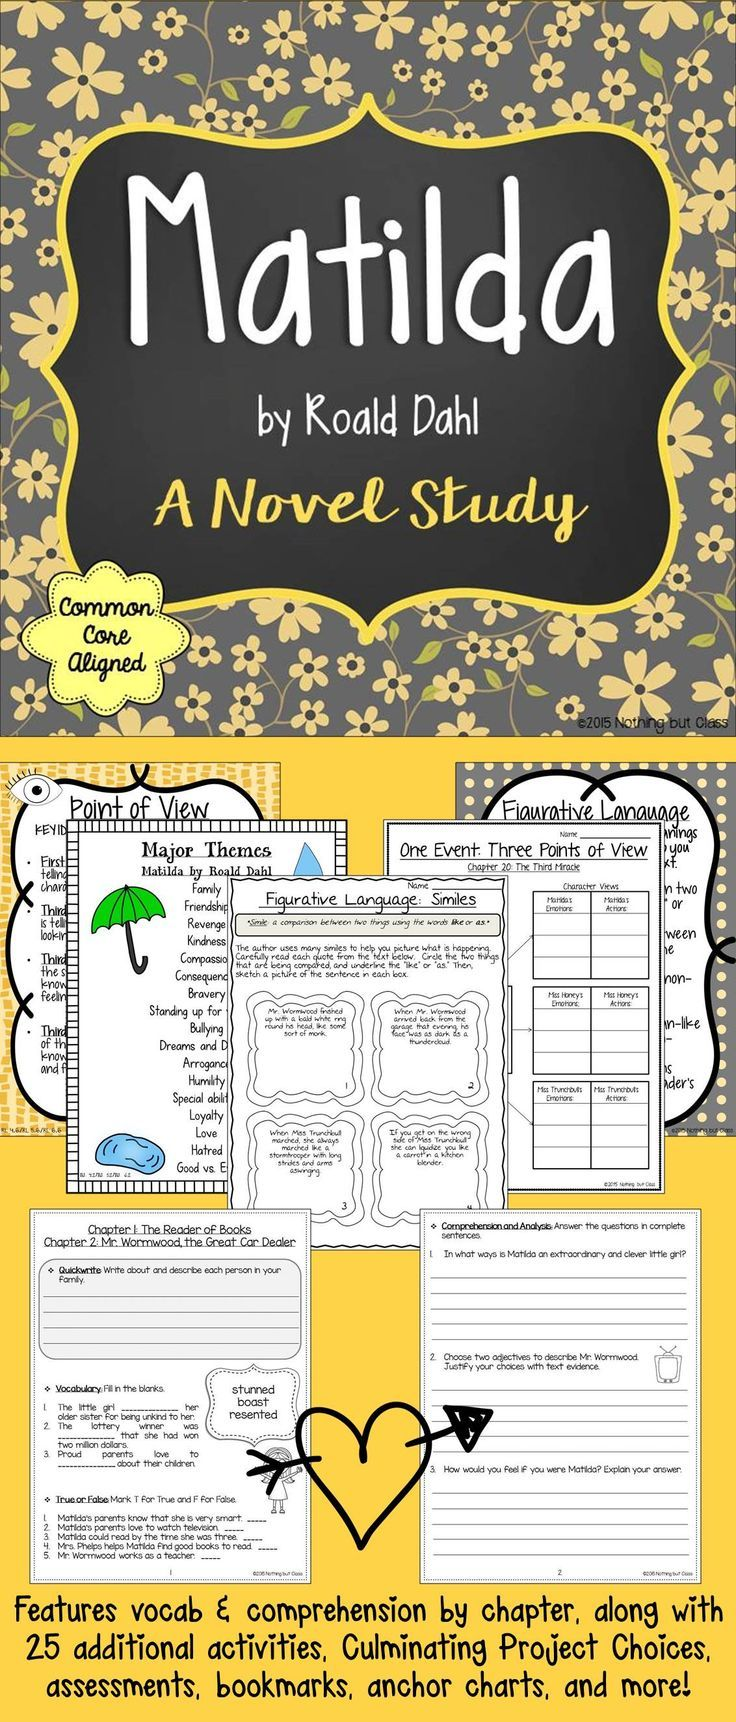 Workbooks the twits worksheets ks2 : Matilda by Roald Dahl - Bloom's Taxonomy and Multiple ...